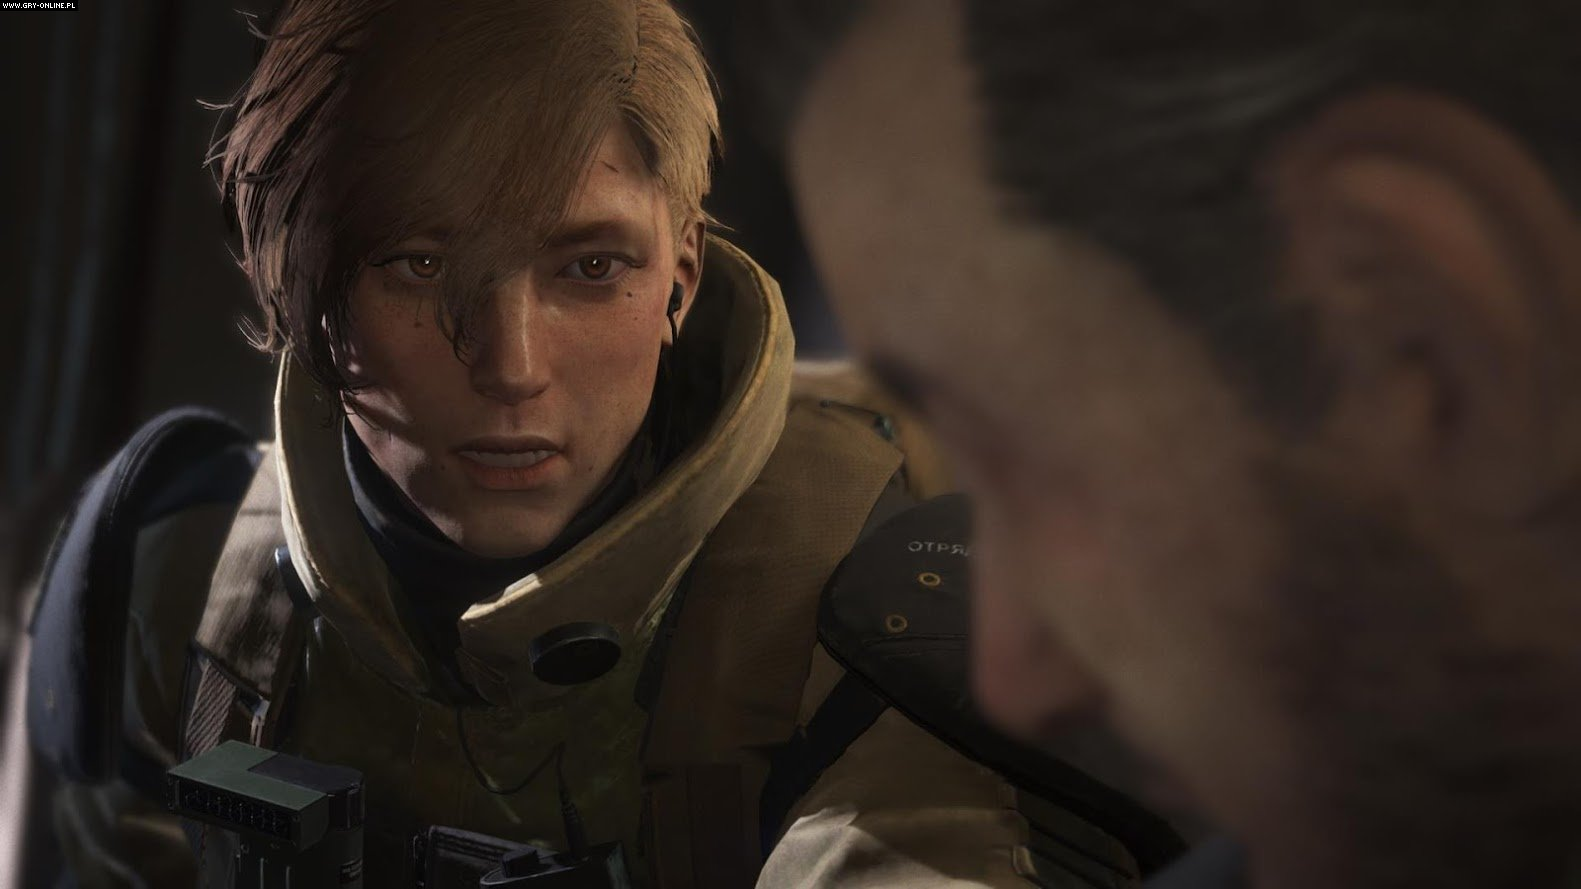 Left Alive PC, PS4 Gry Screen 7/97, Square-Enix / Eidos